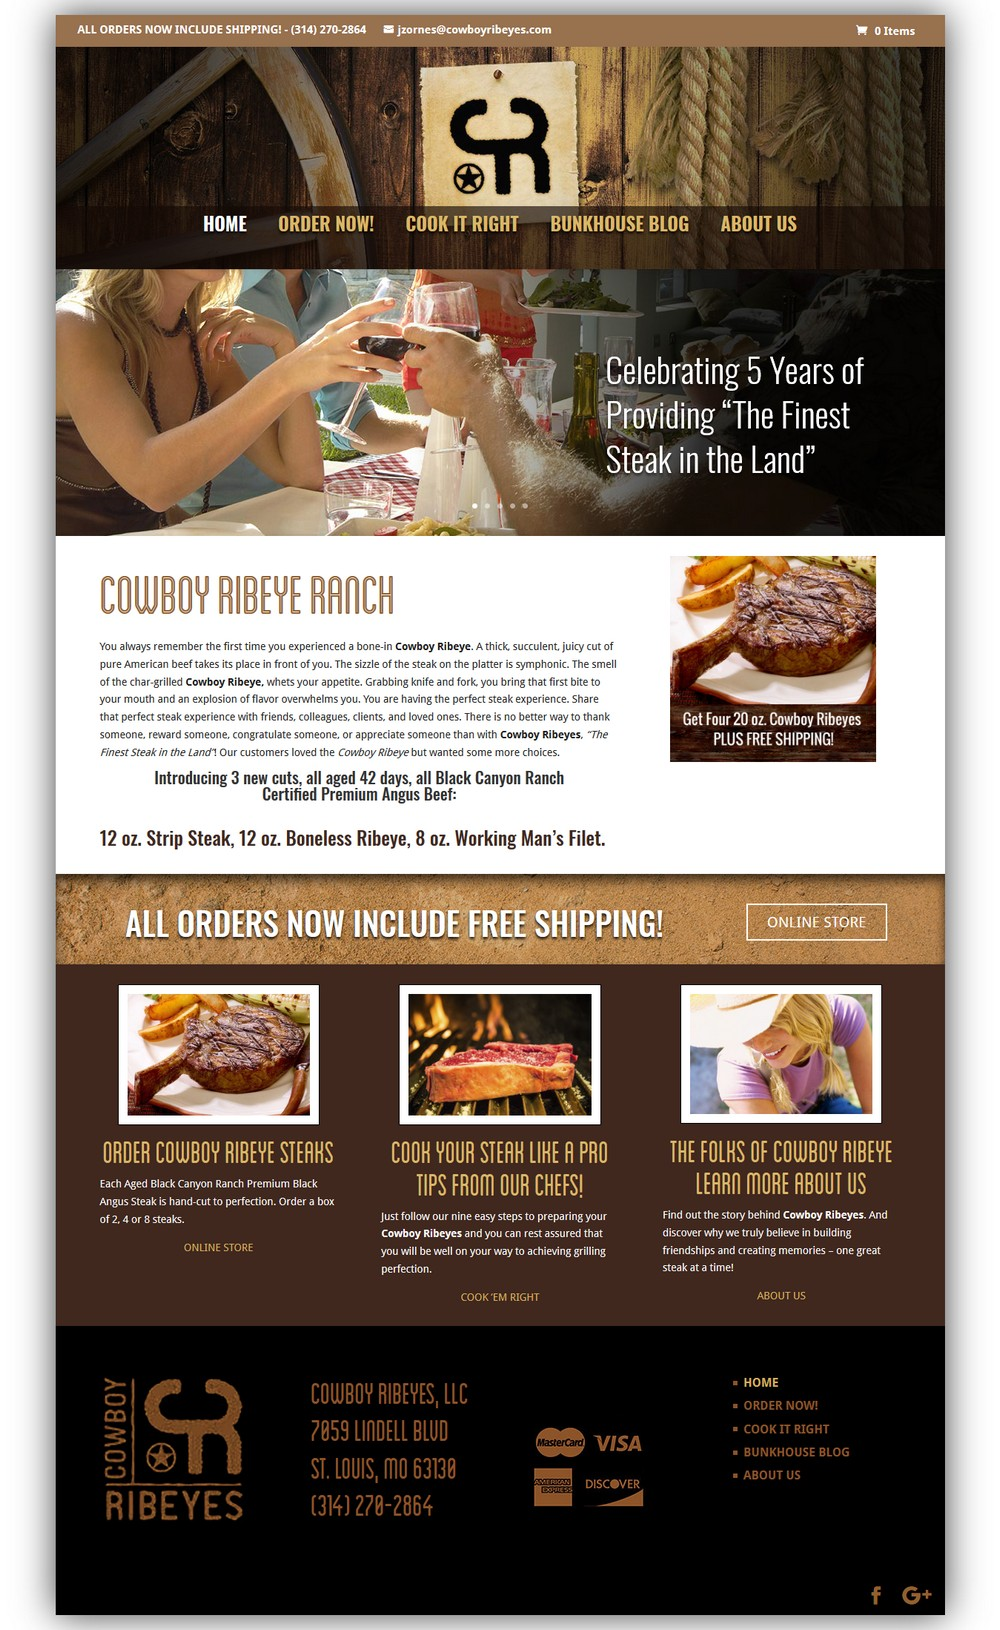 Cowboy Ribeye Ranch - Successfully Delivered Projects On-Time and On-Budget. Improved Website Conversation Rate By 80% Against Existing Control.